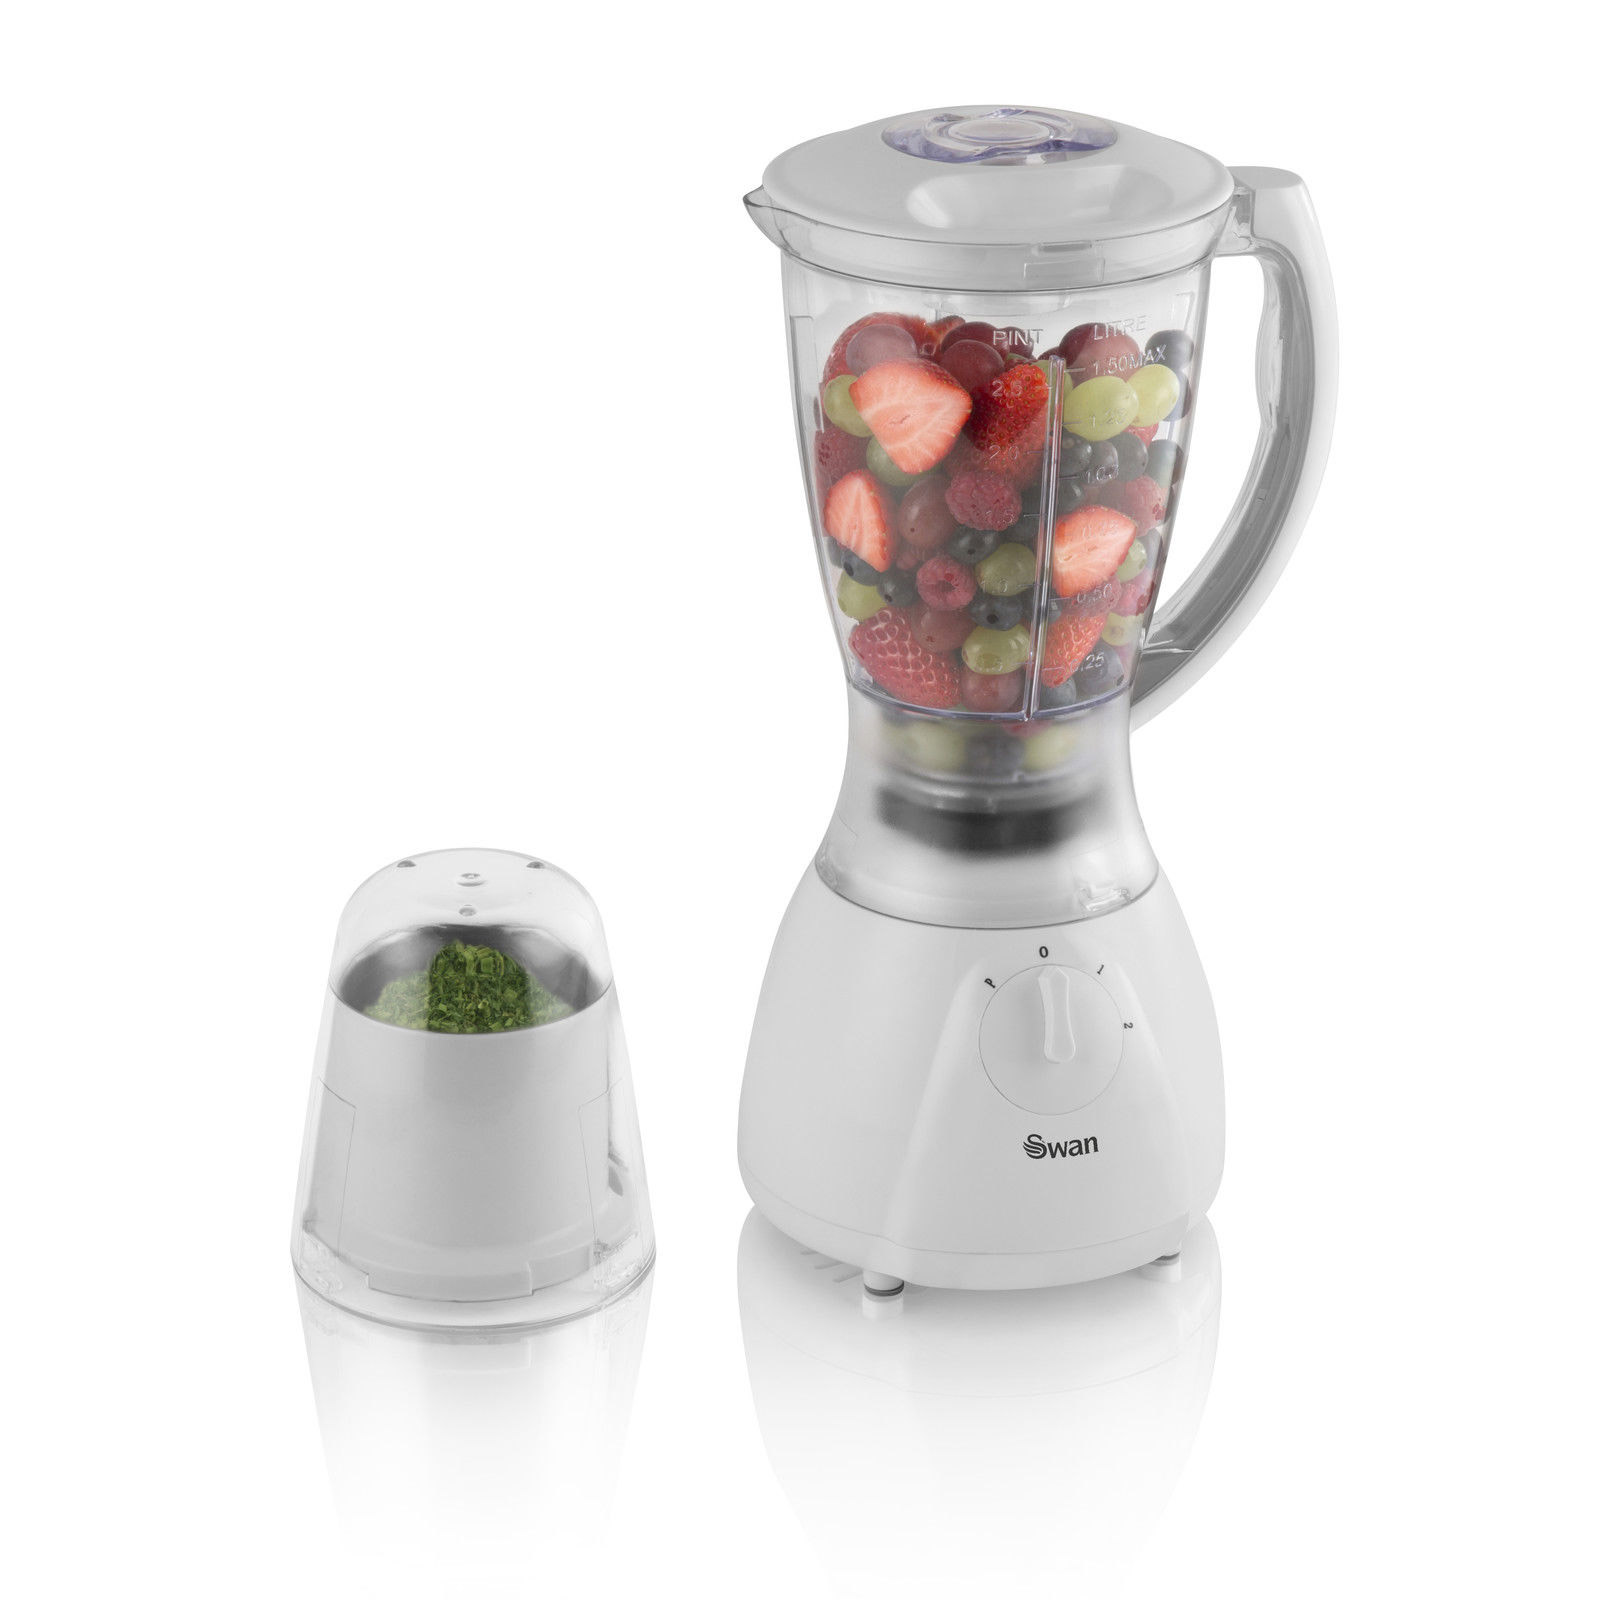 Swan SP26050N 400W Blender & Grinder in White